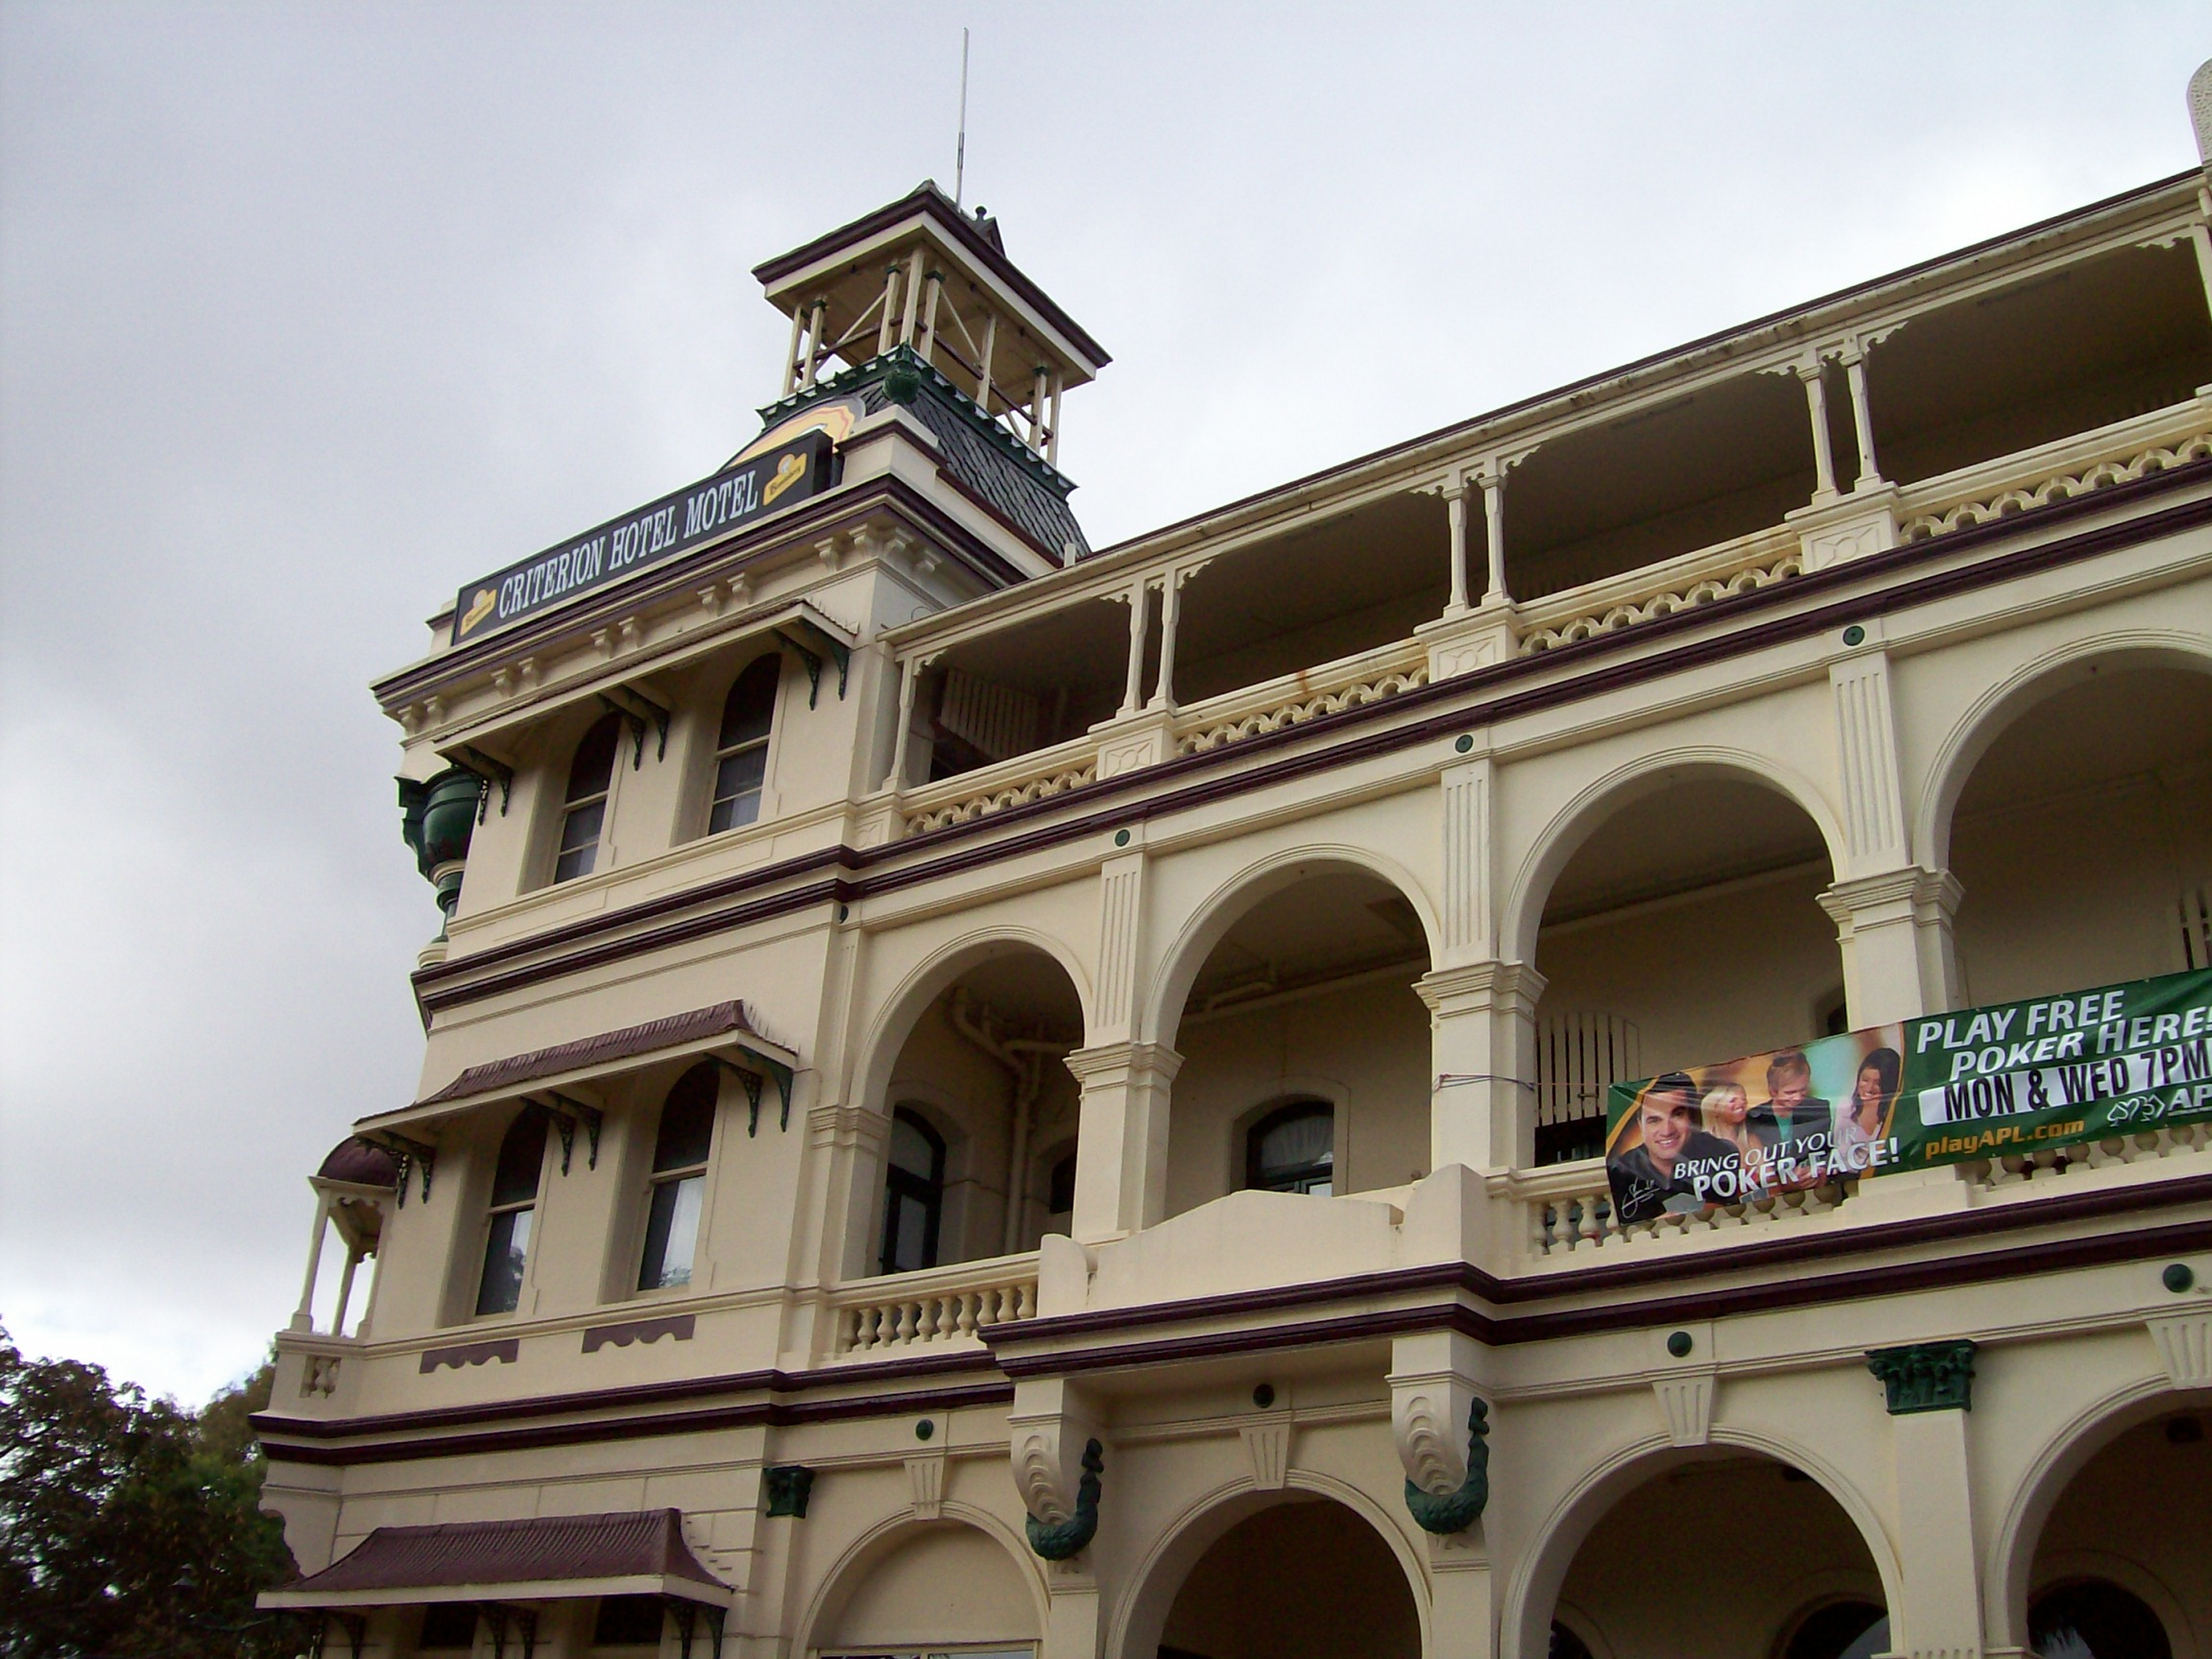 The Criterion Hotel